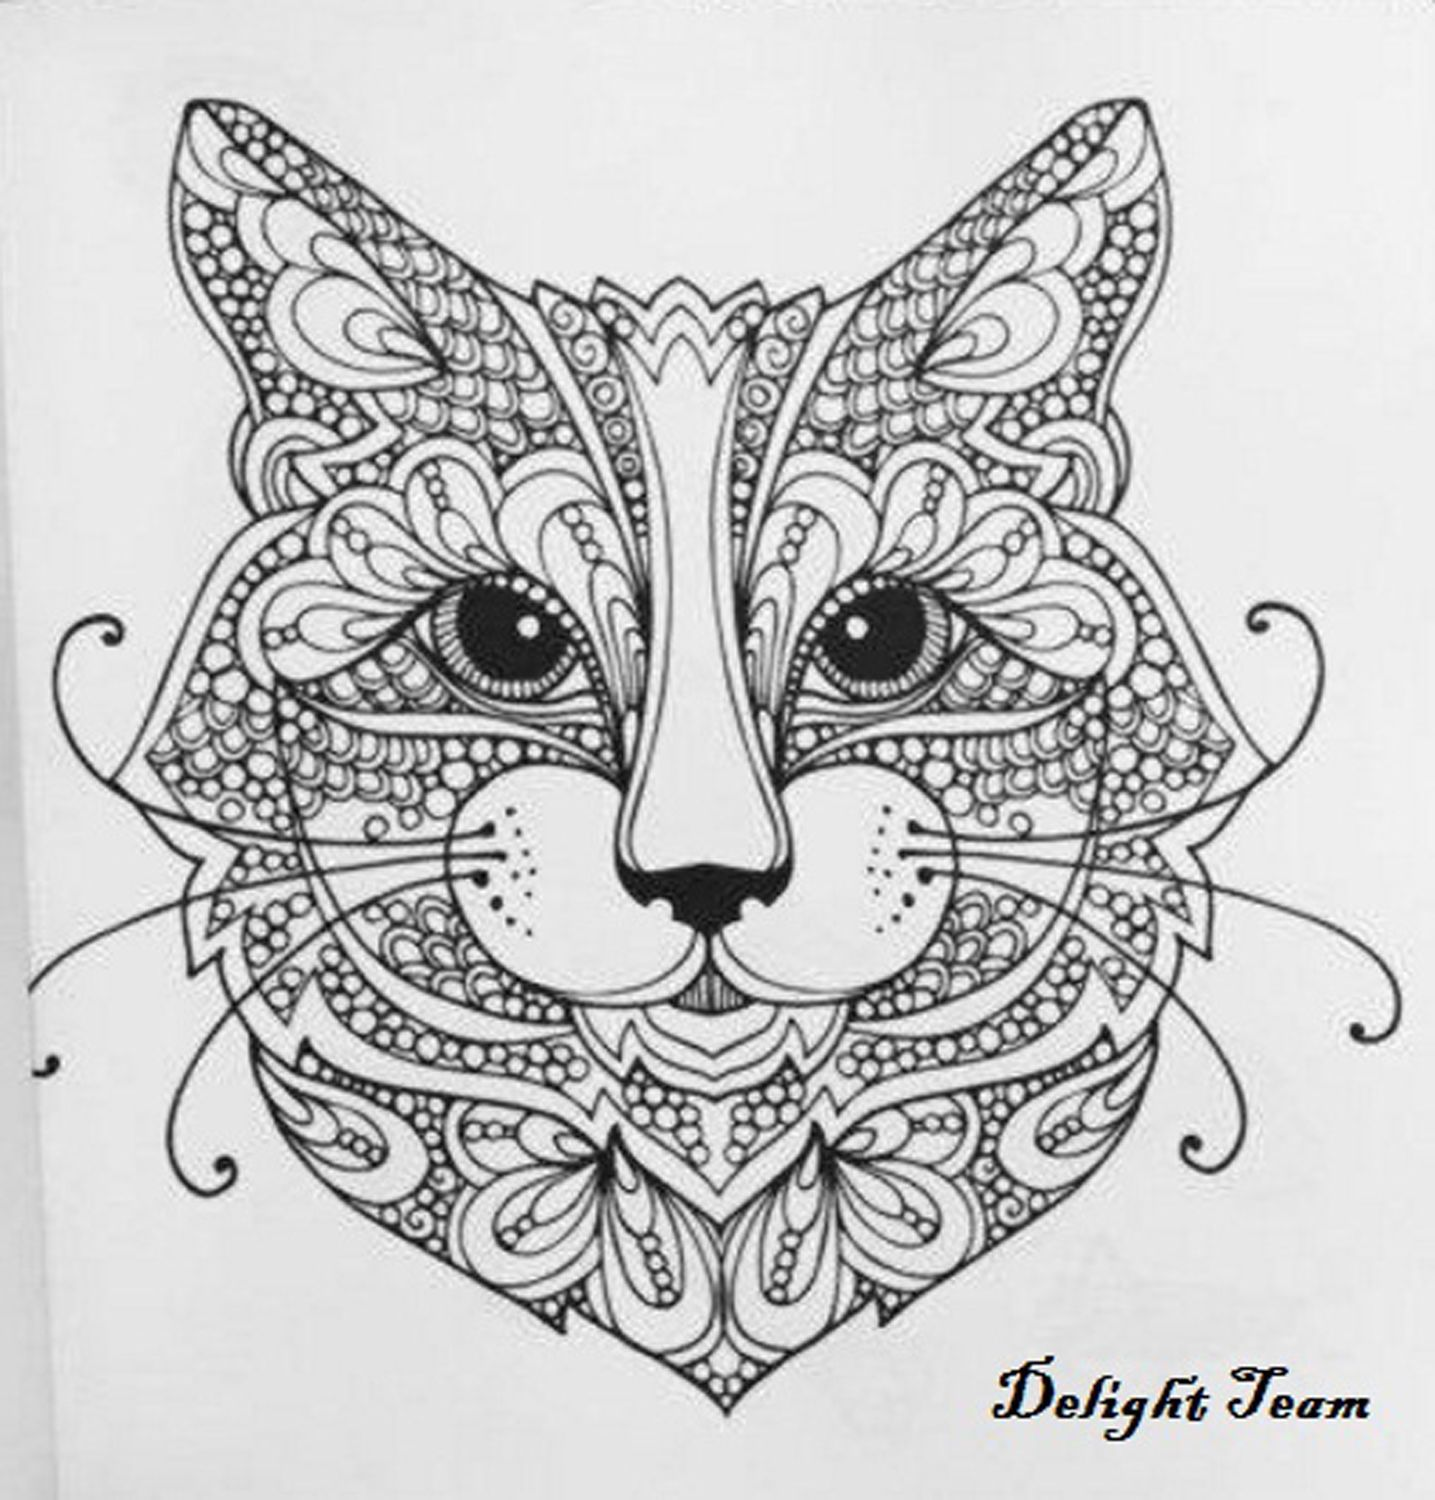 Coloring Book For Adults Cute Cats Stress Relief Designs